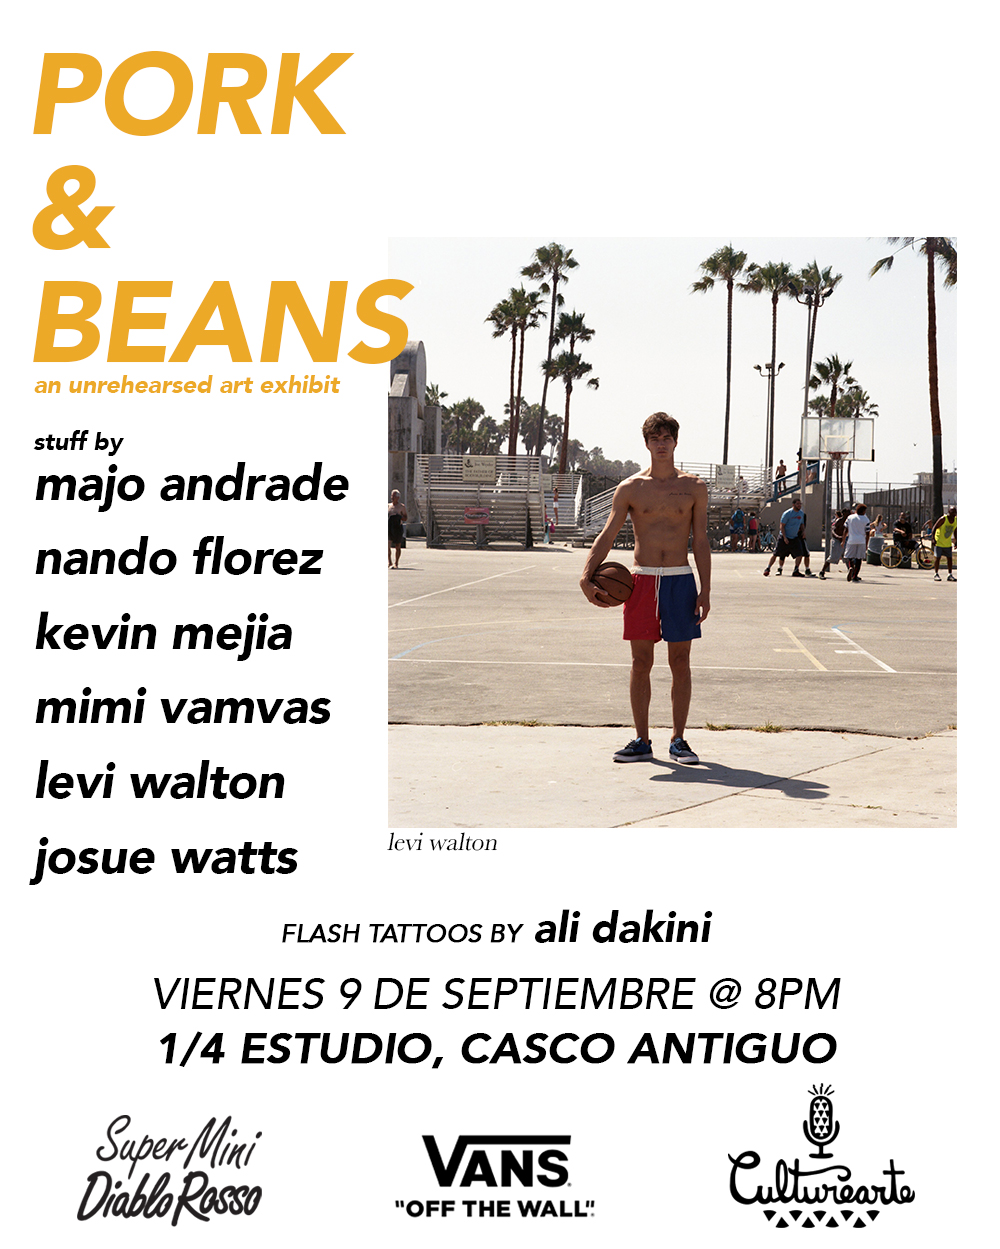 PORK & BEANS: Group show in Panama City, Panama